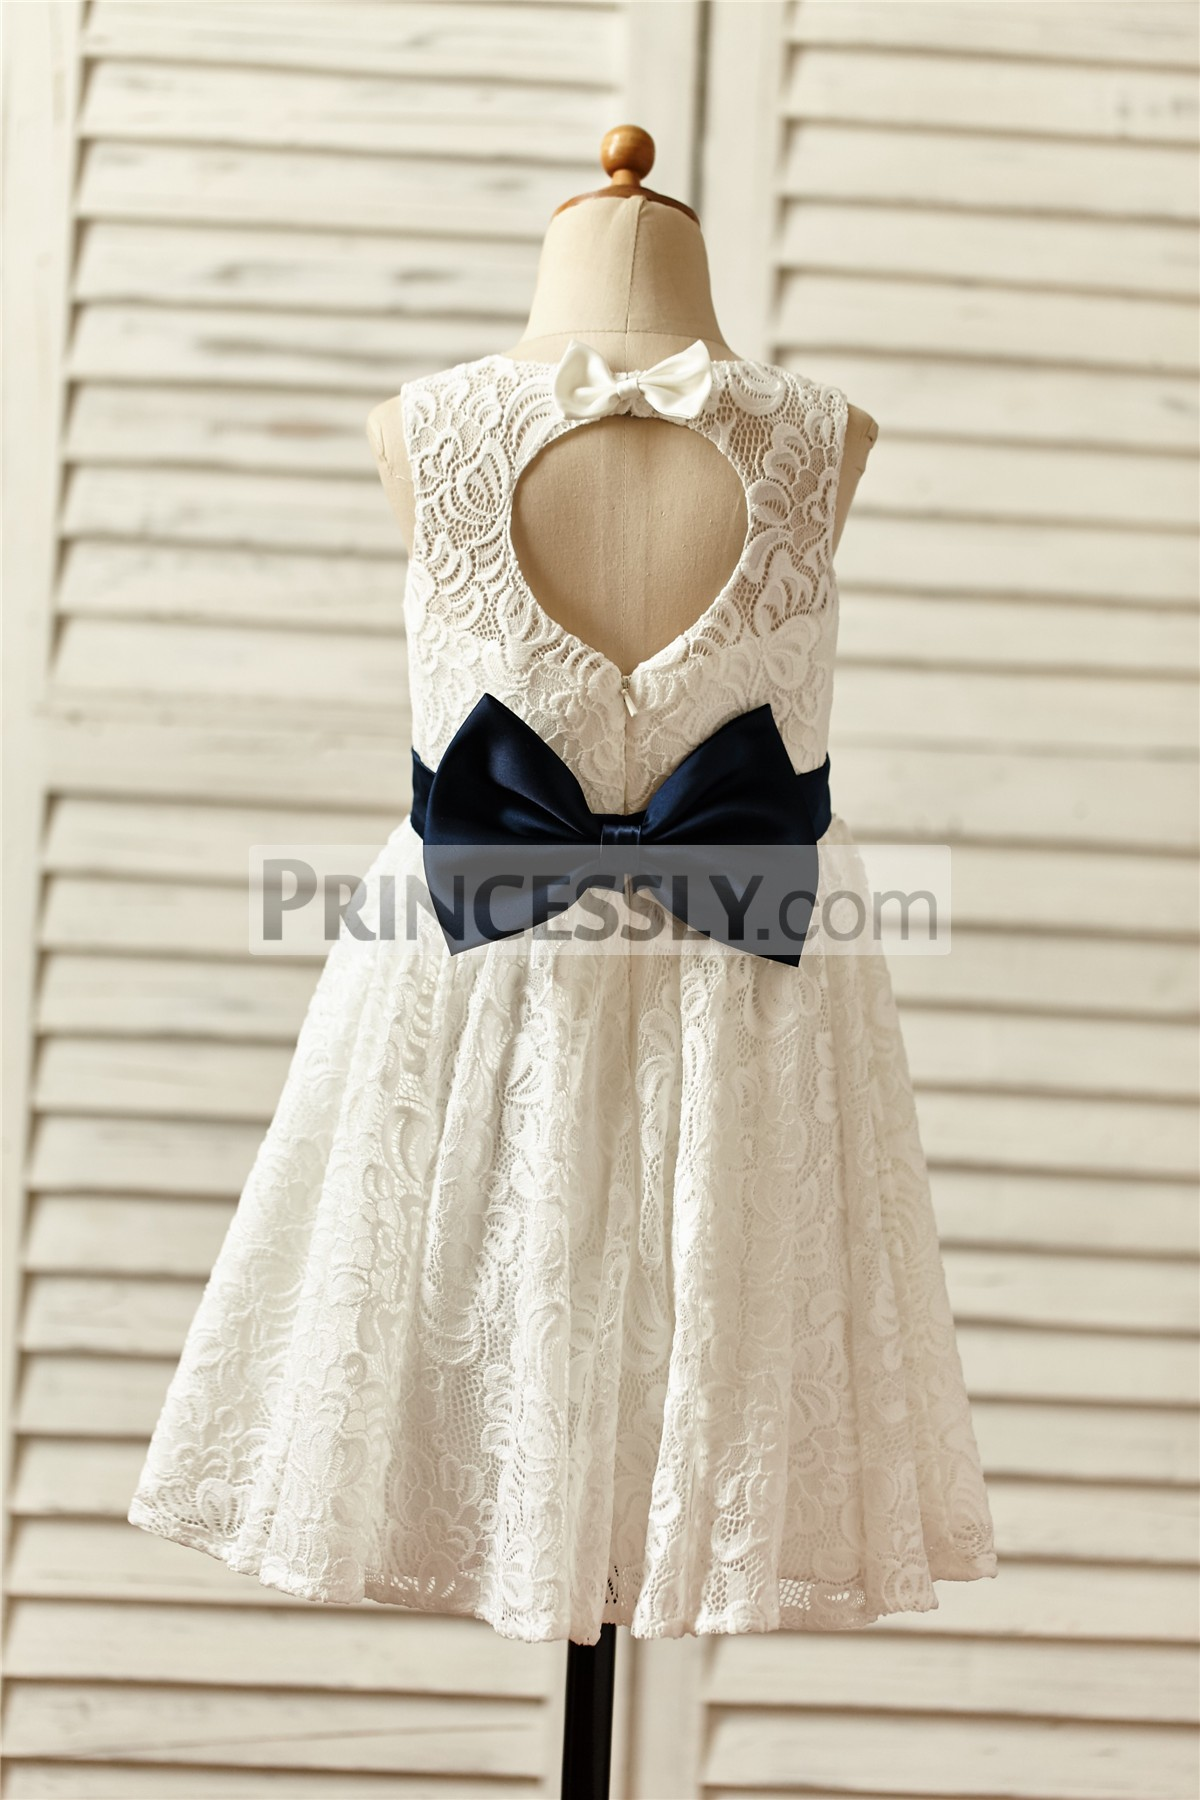 Scoop neck sleeveless ivory lace wedding baby girl dress with cutout back